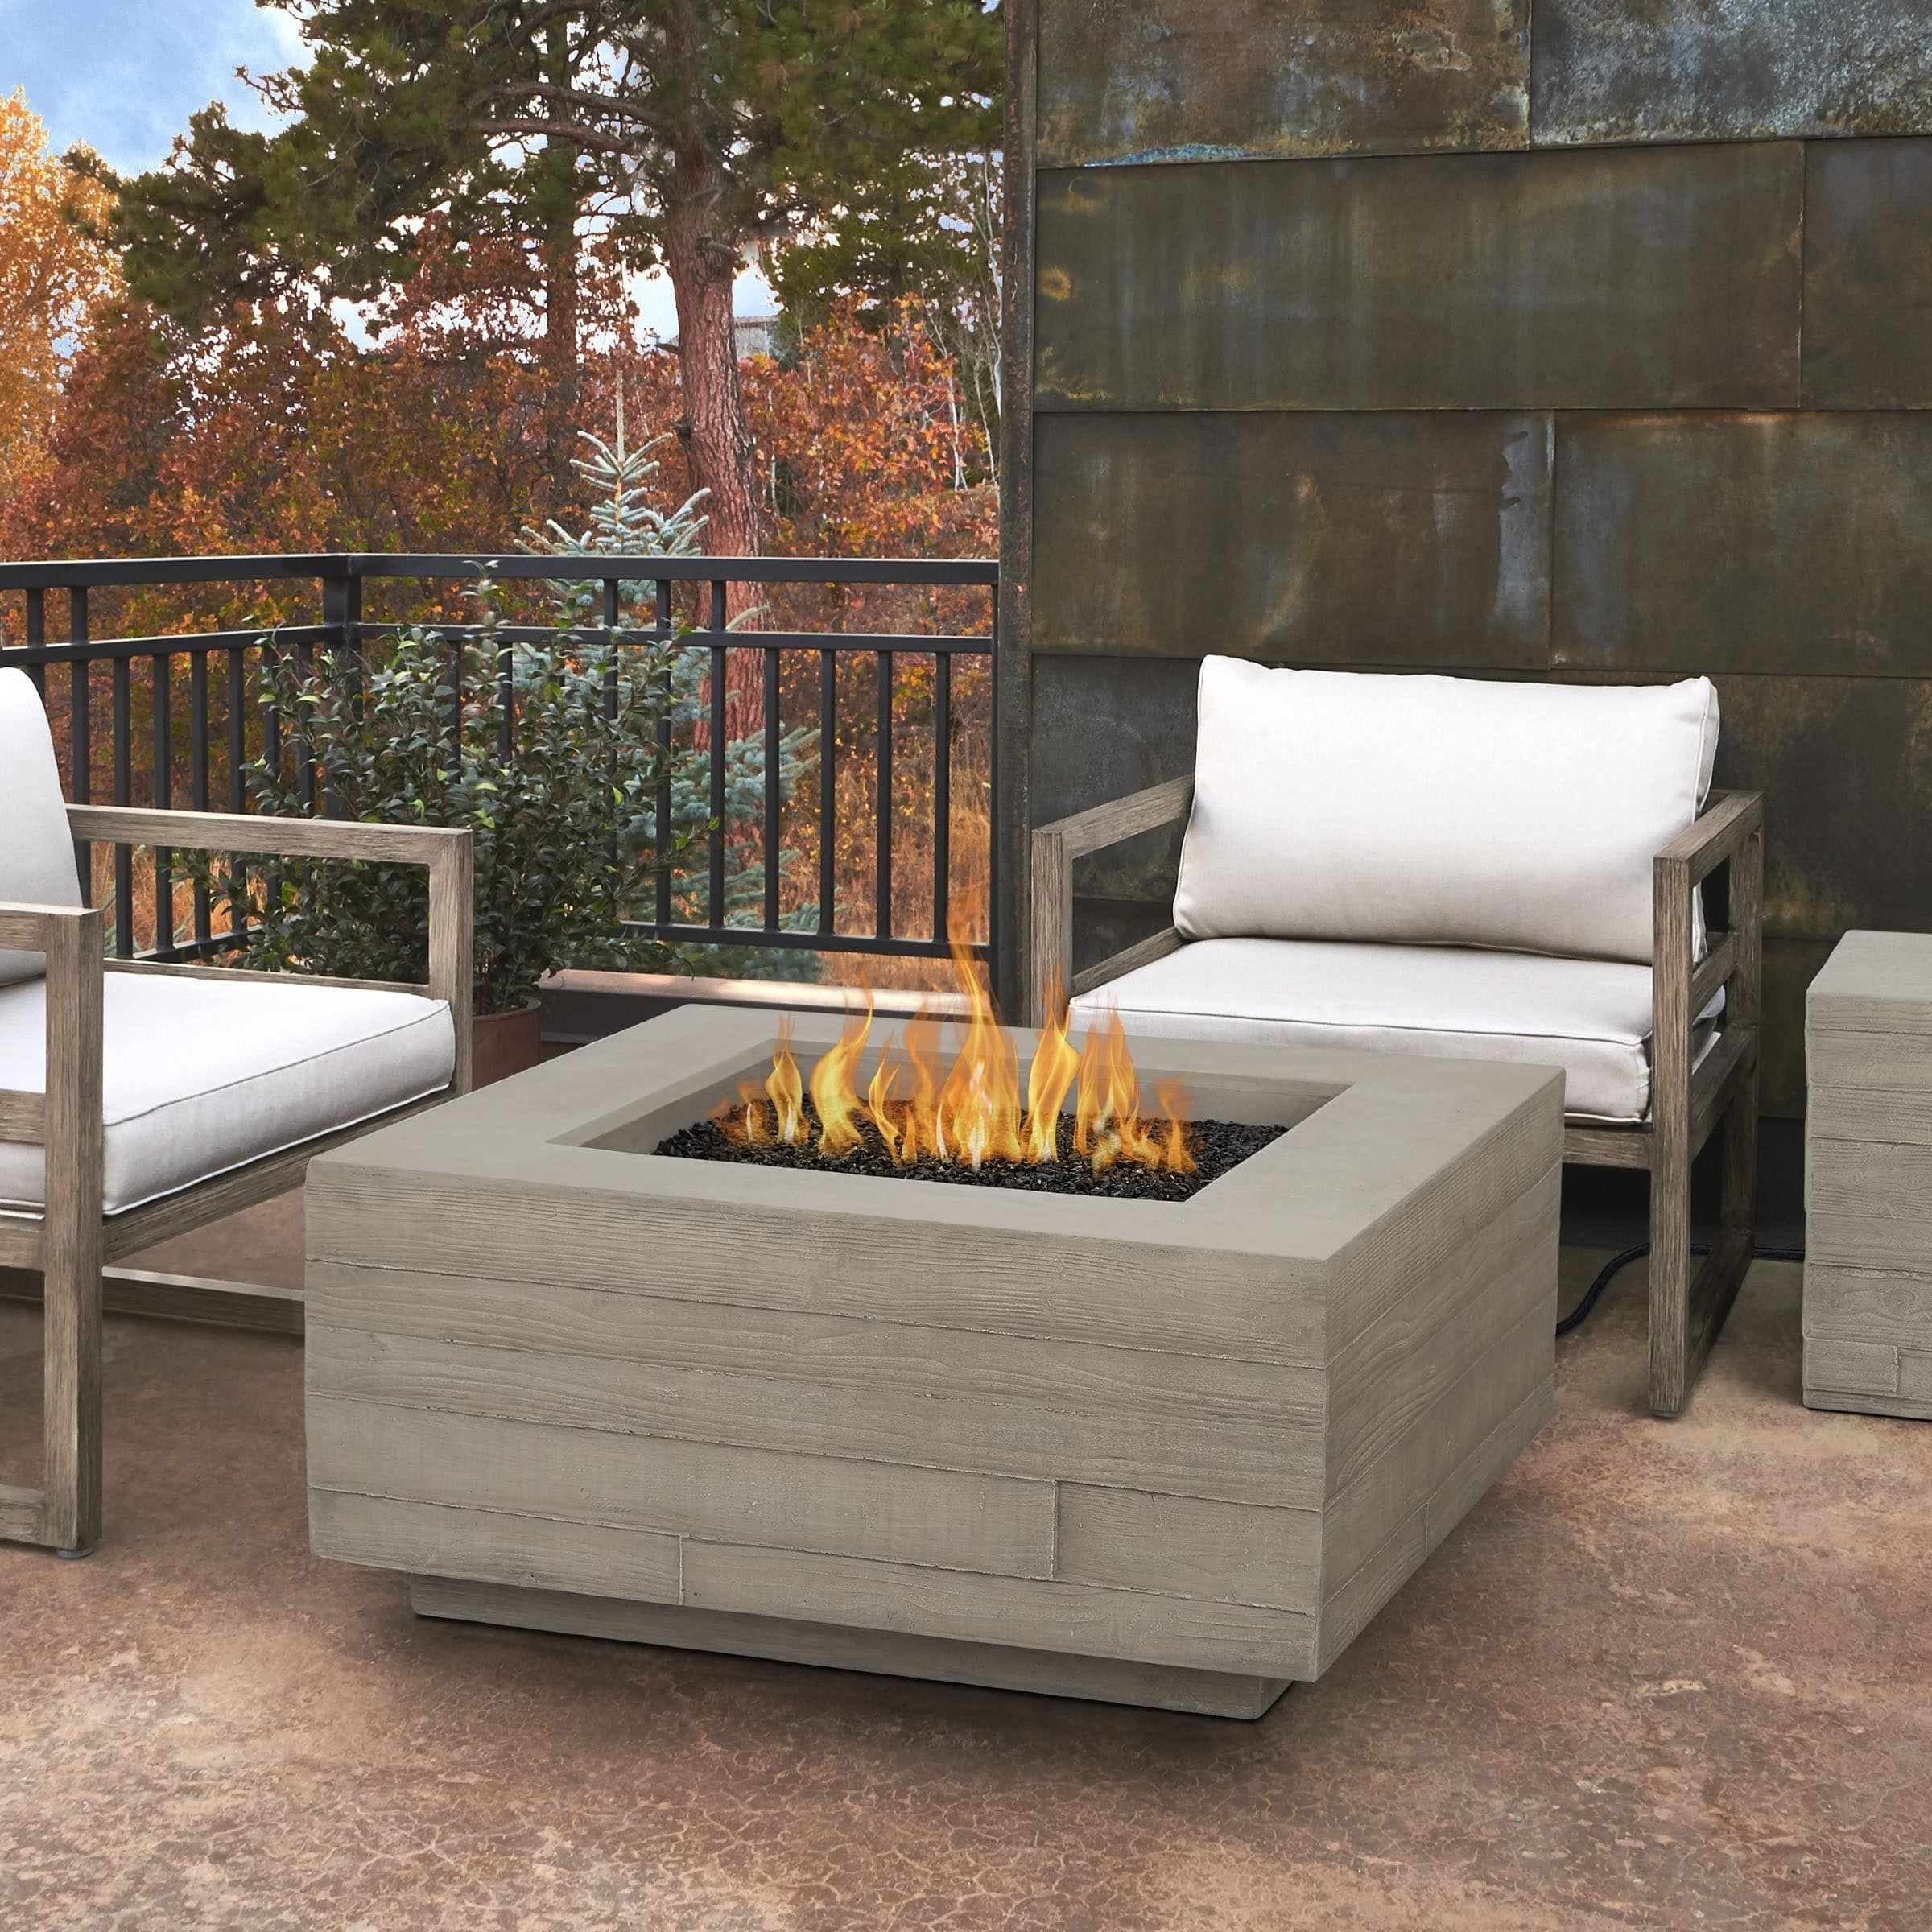 Online Shopping Bedding Furniture Electronics Jewelry Clothing More Propane Fire Pit Table Fire Pit Table Fire Pit Backyard